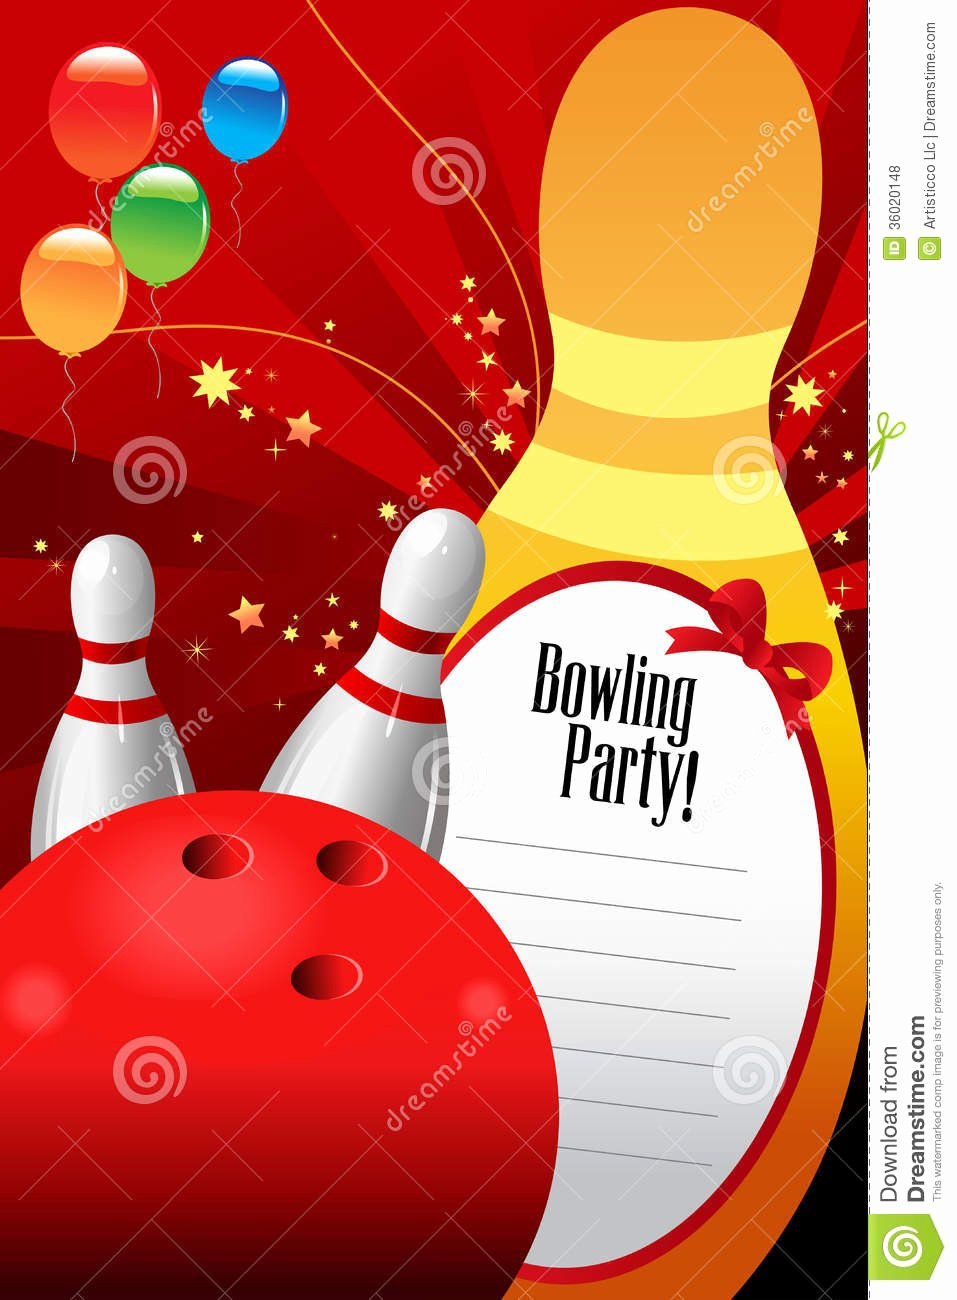 Bowling Invitations Free Template Lovely Bowling Party Invitation Template Royalty Free Stock